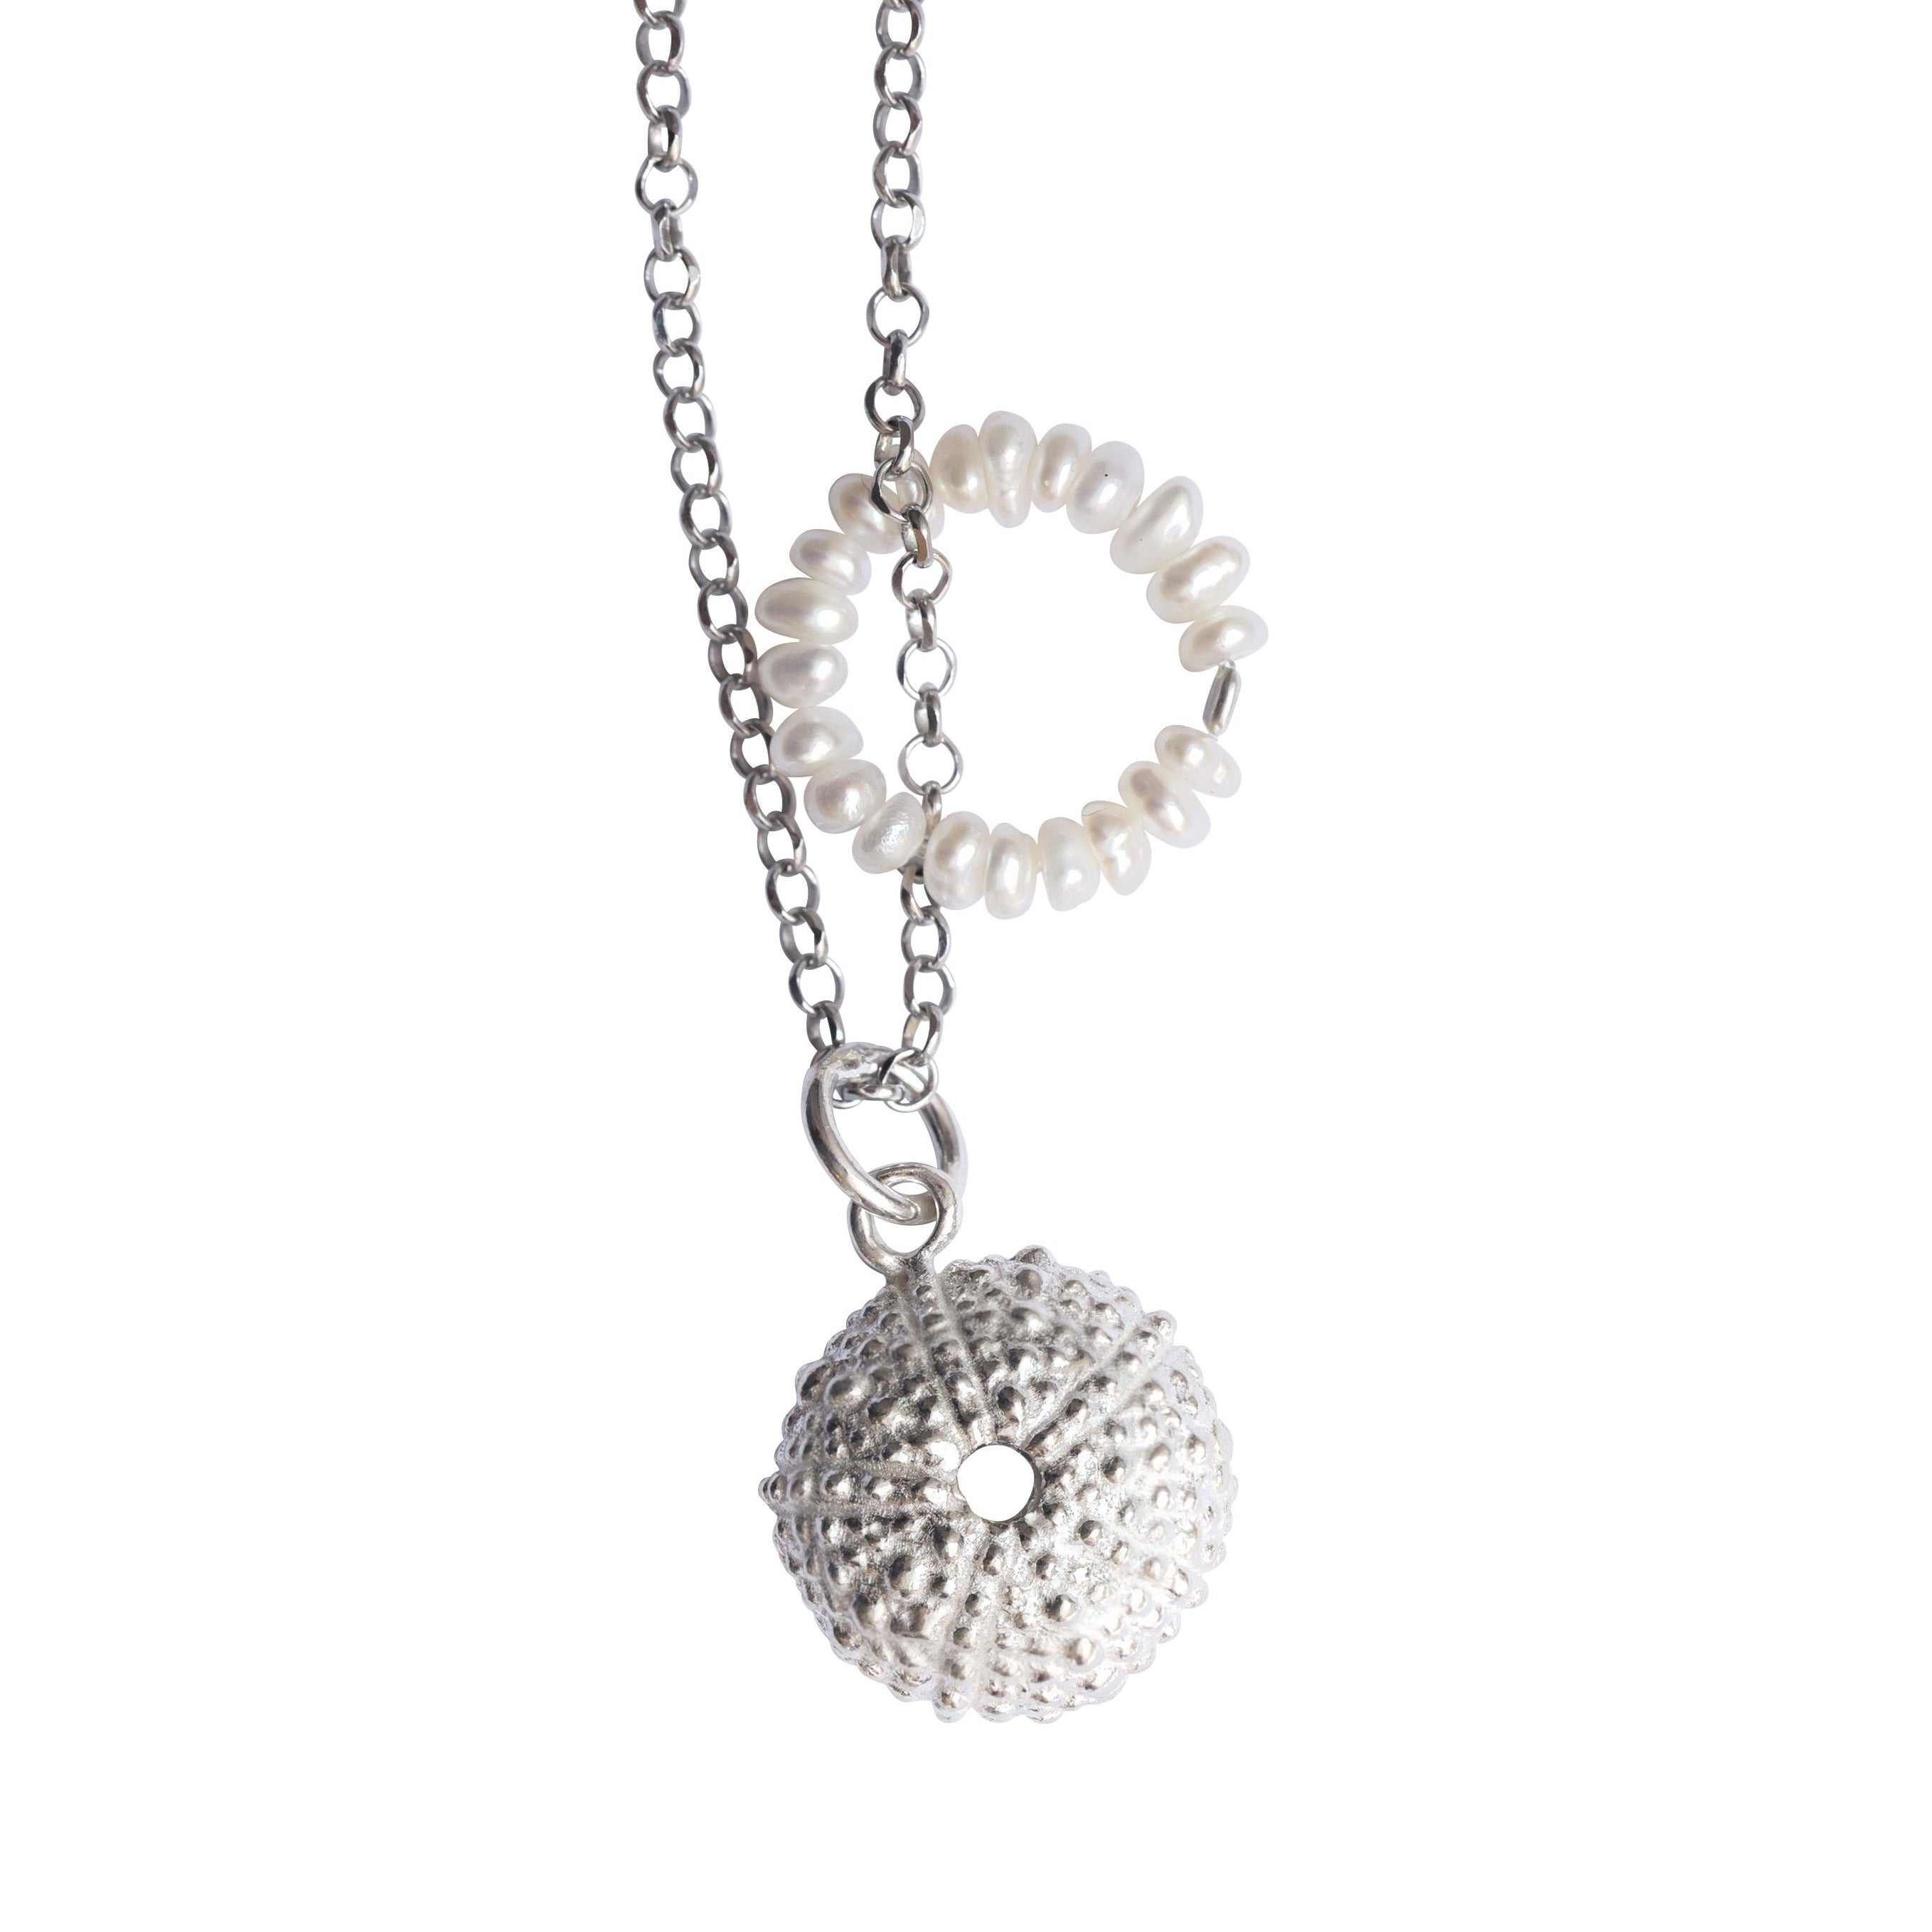 Necklace Sea Urchin - Pearls - Silver